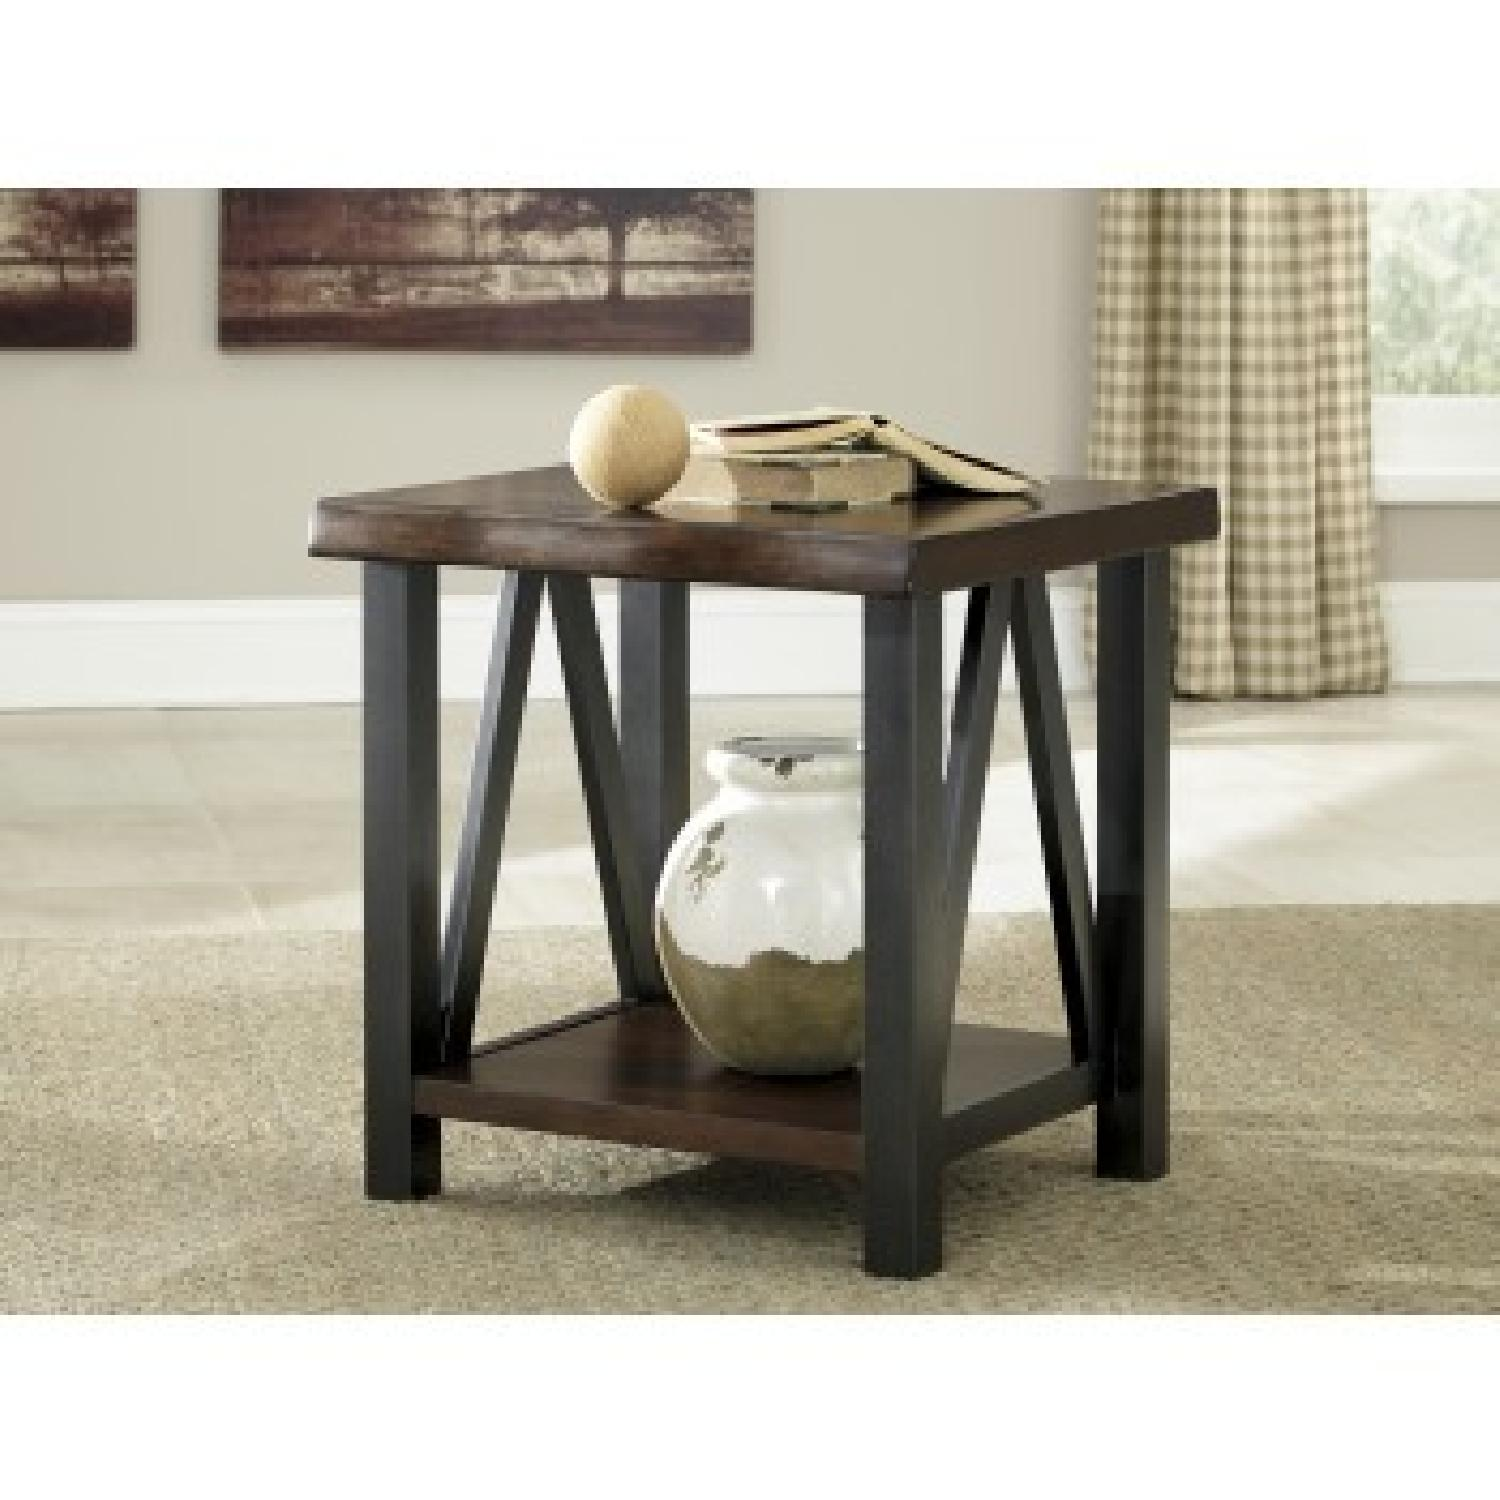 Ashley Furniture Esmarina Walnut Brown Square End Table AptDeco